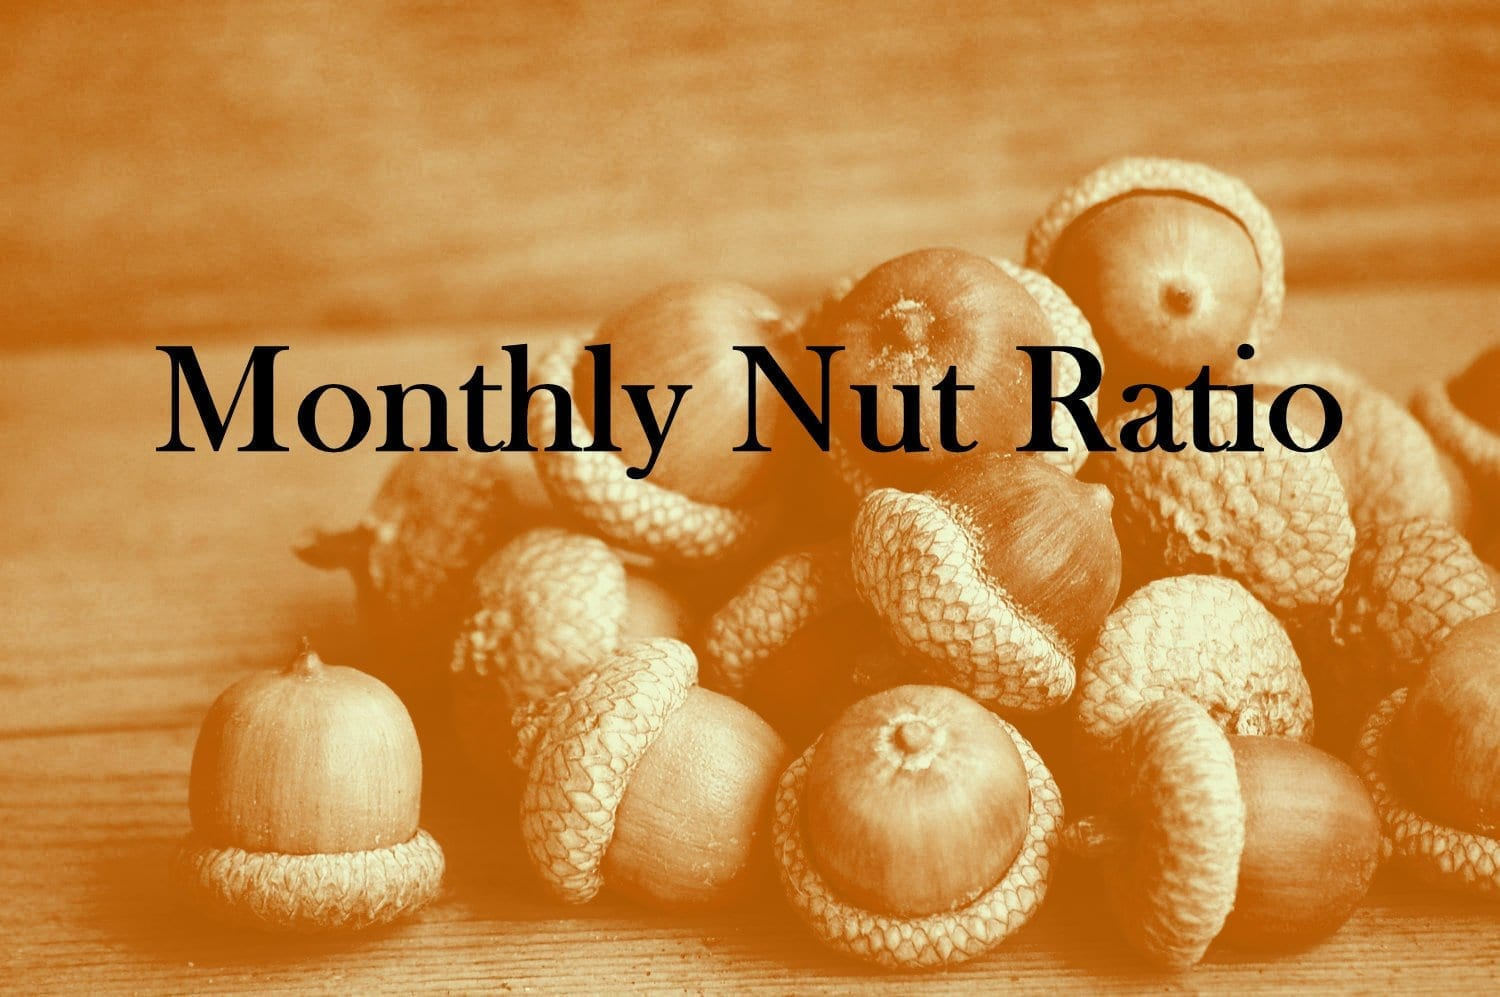 The Monthly Nut Ratio